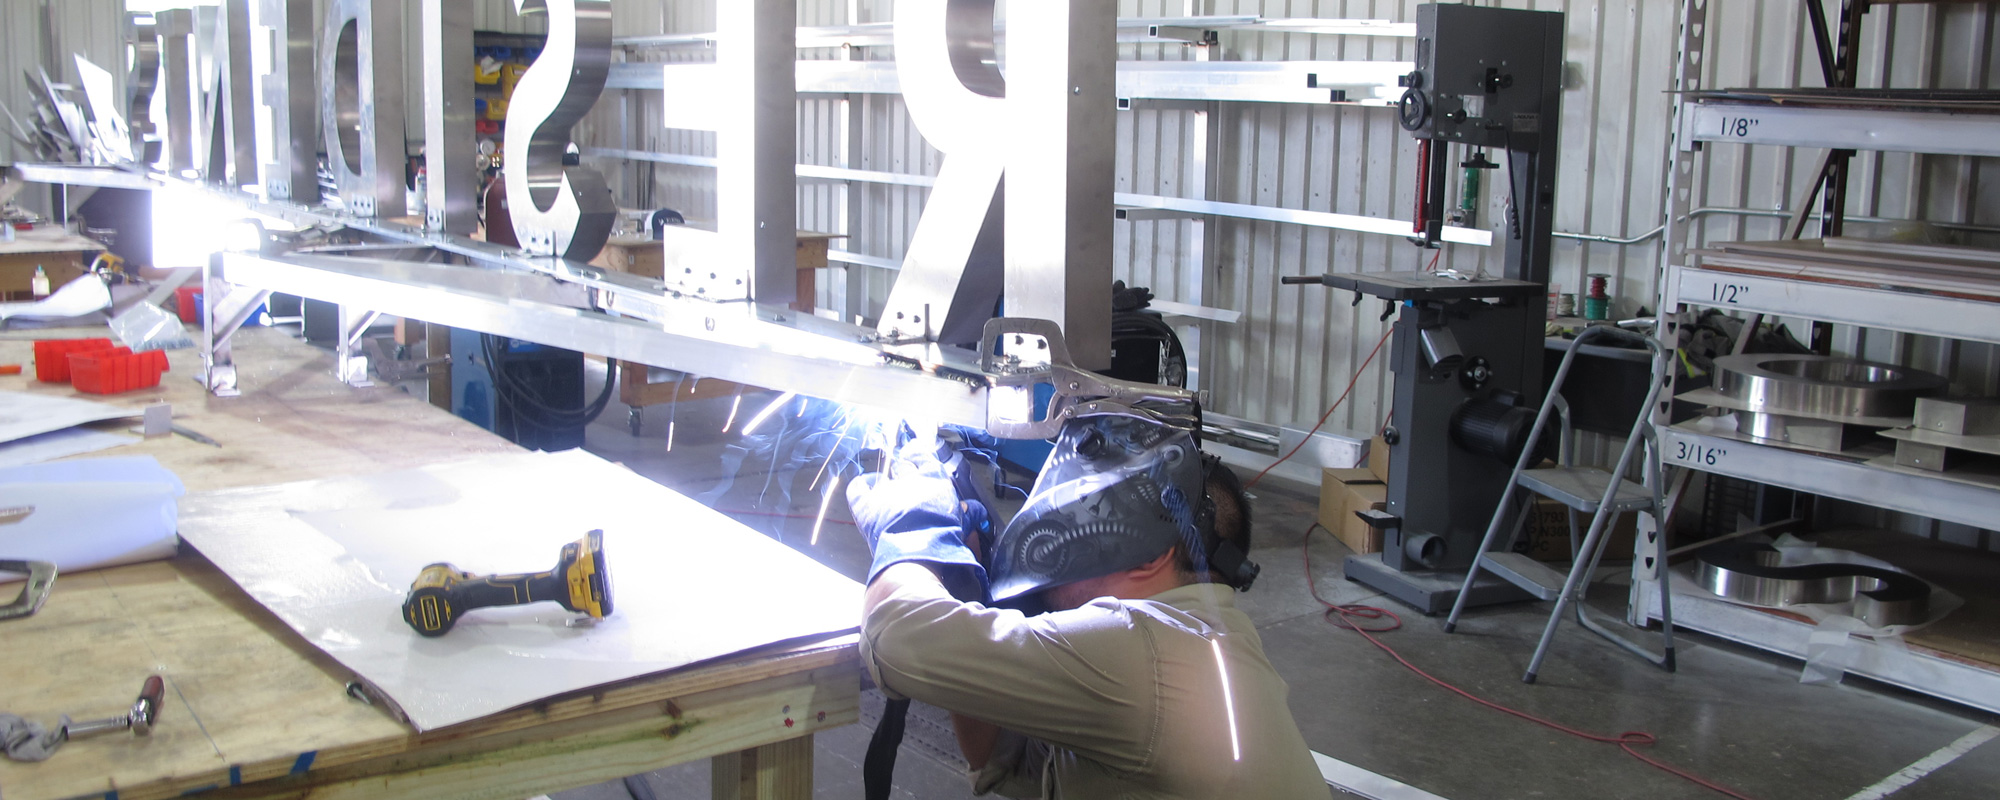 Fabricator welding aluminum structure to support dimensional letters